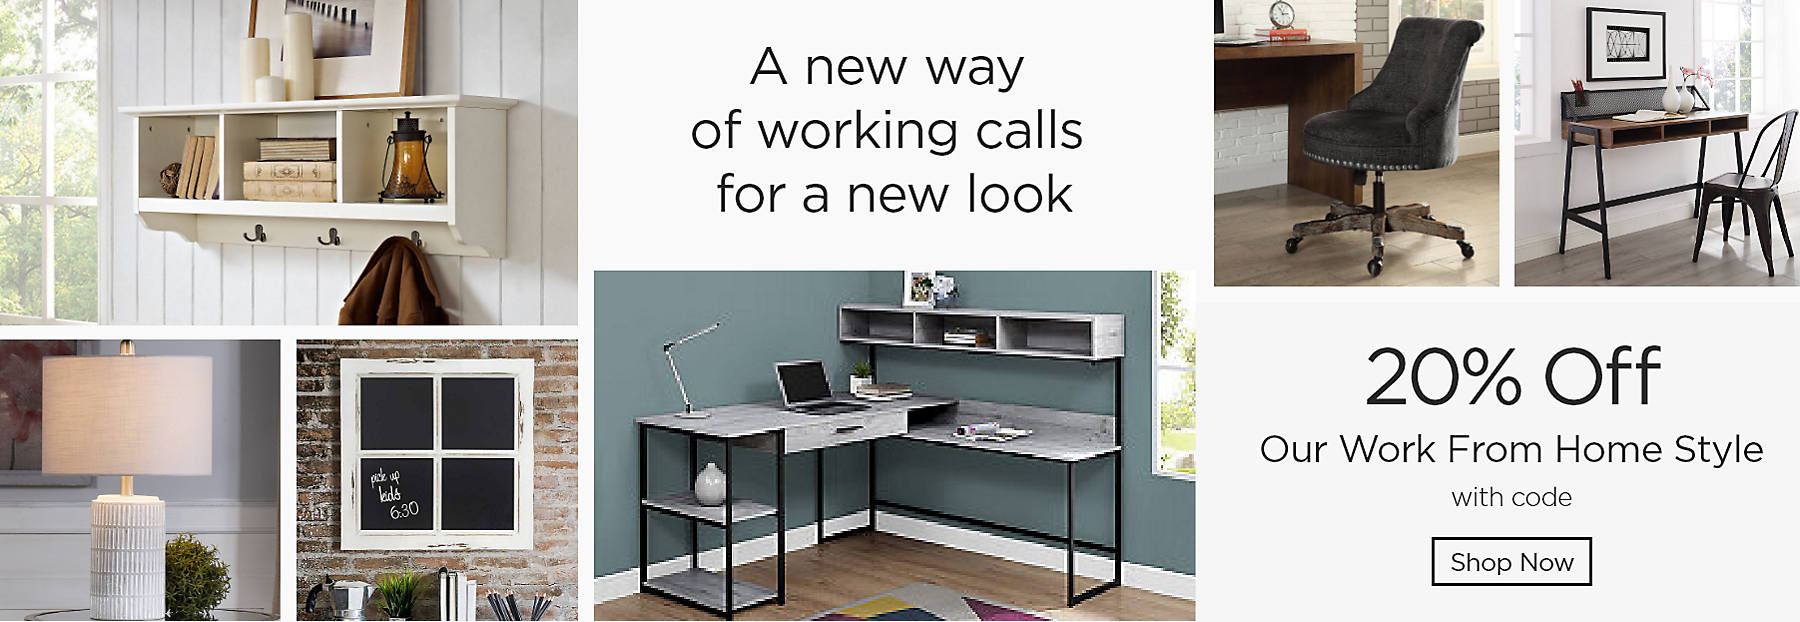 A new way of working calls for a new look 20% Off our work from home style with code Shop Now